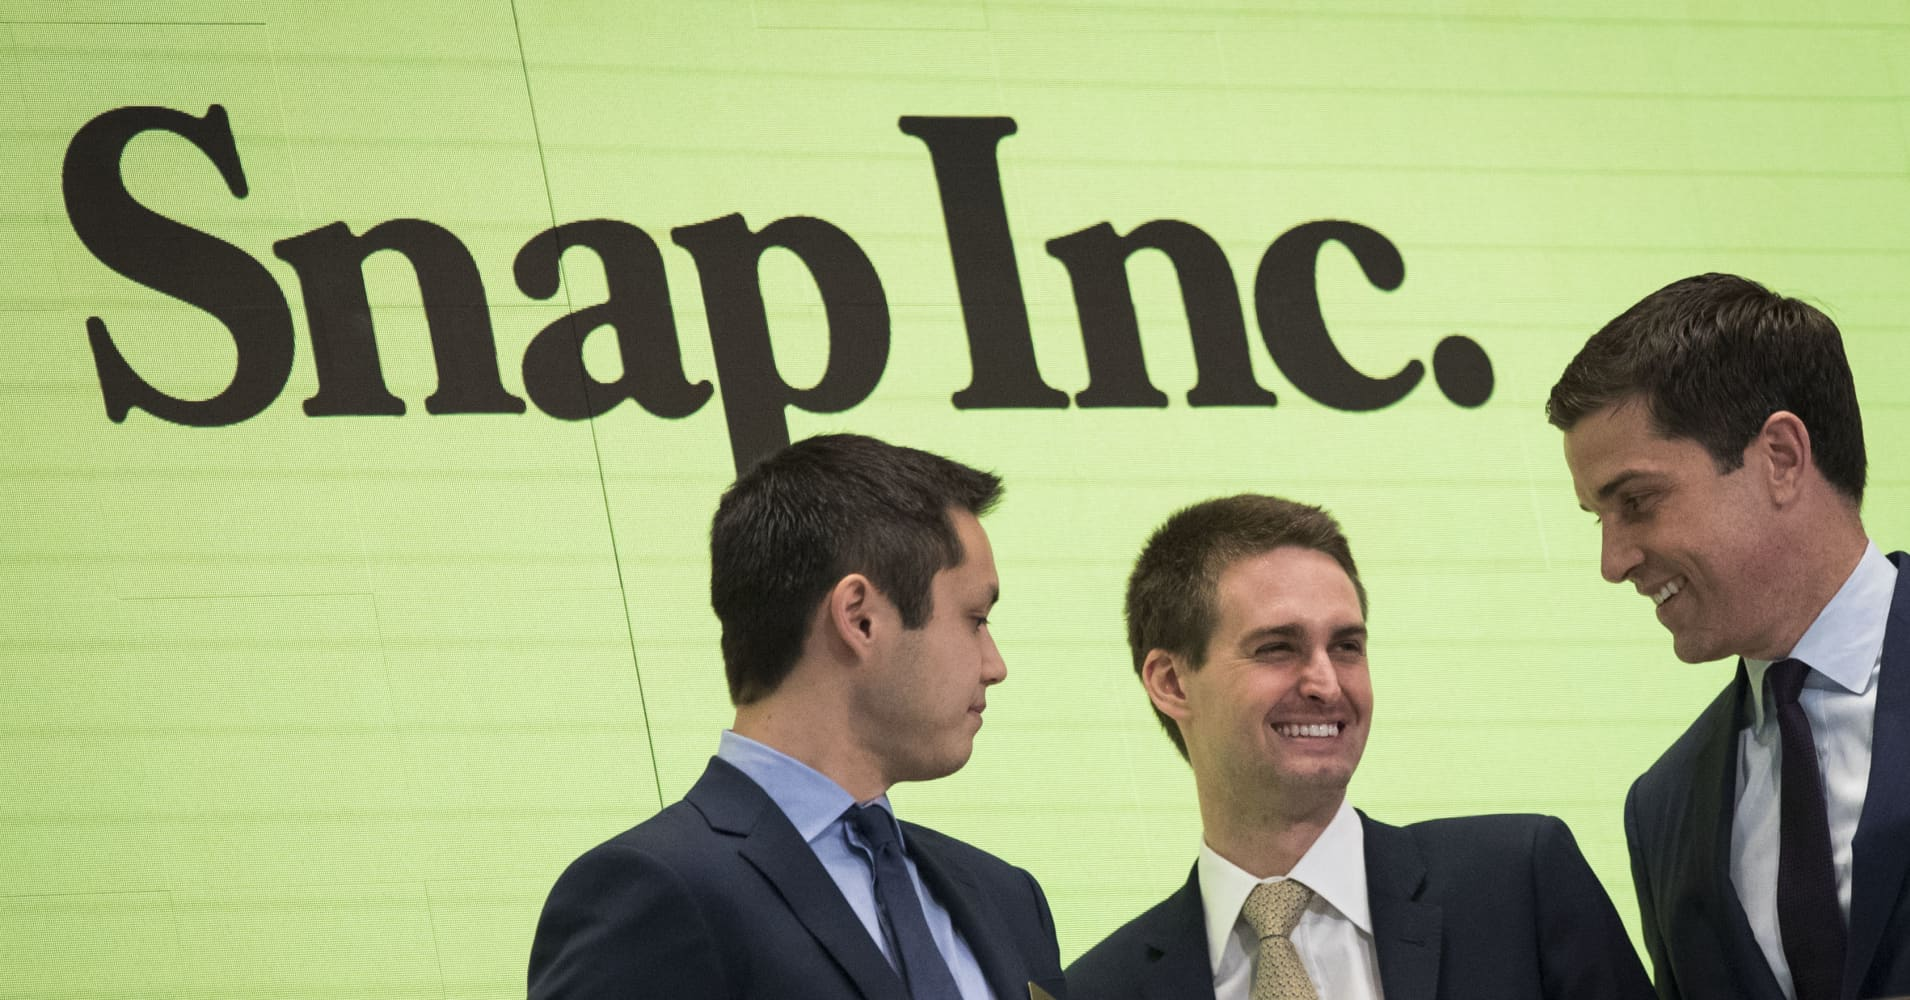 Stocks making the biggest moves midday: Snap, GE, Boeing, AMC & more